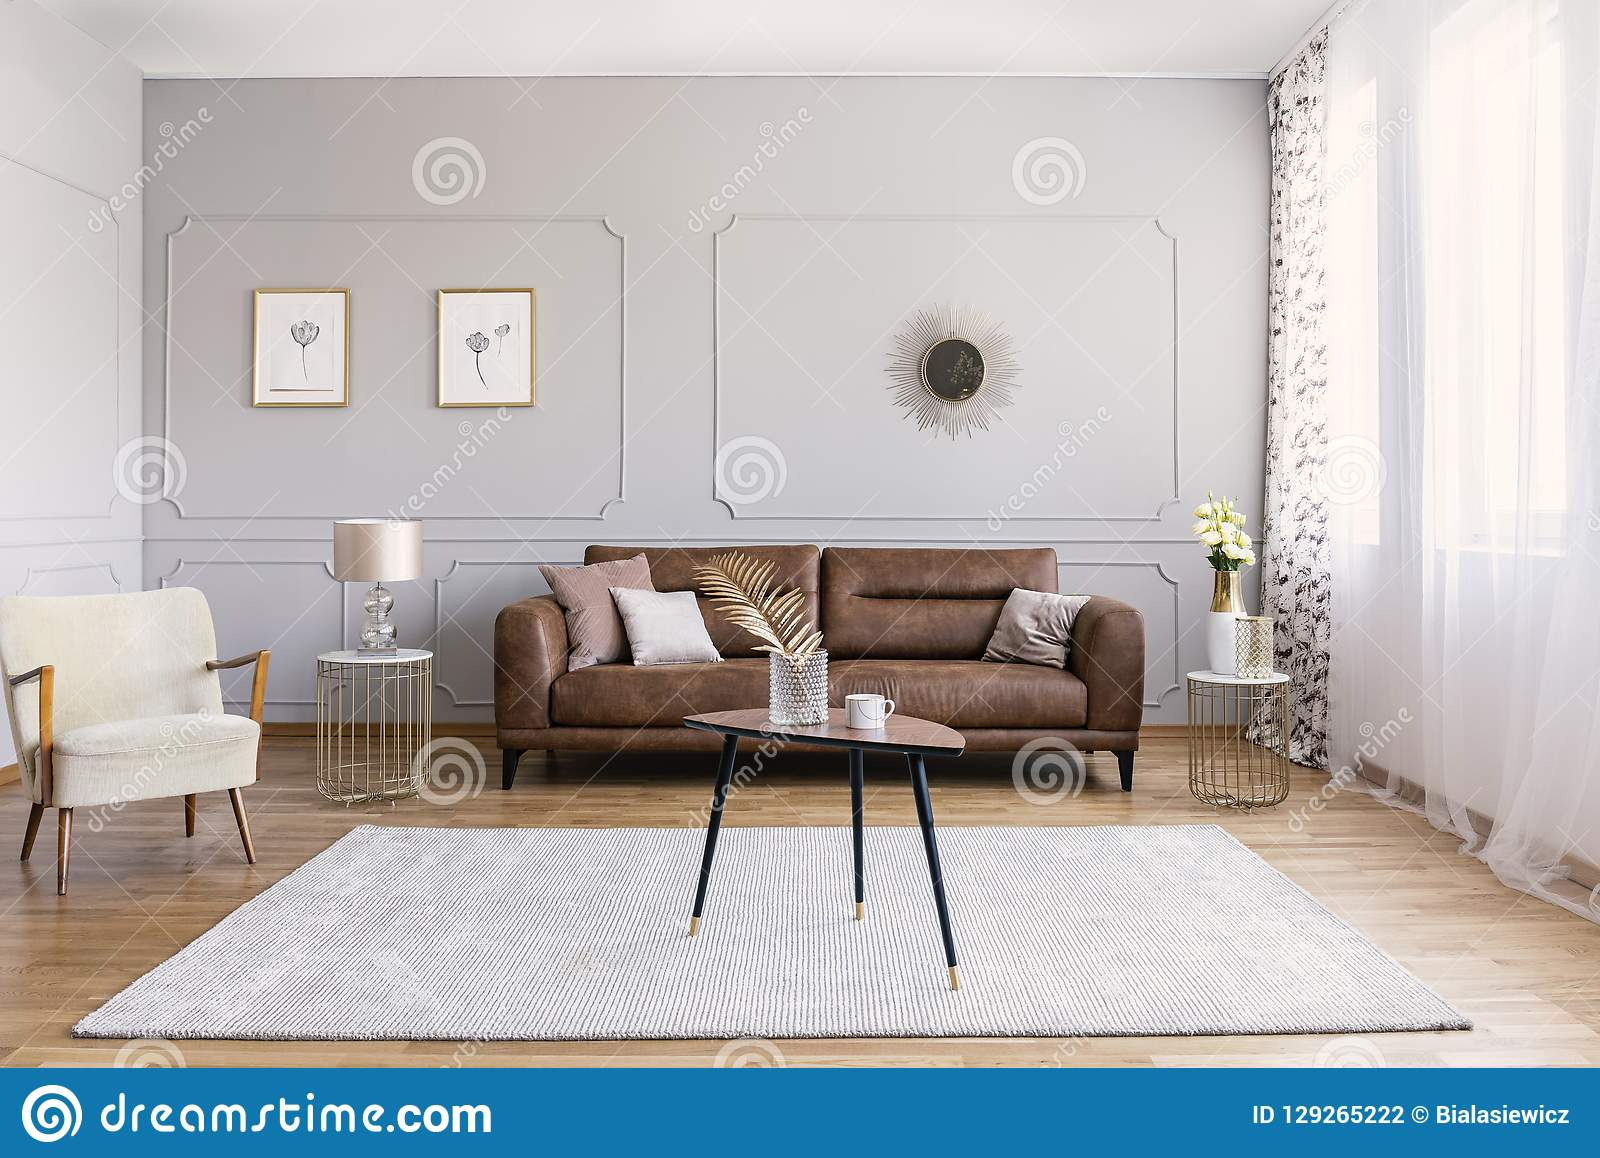 Minimal Interior Design Of Living Room With Brown Leather